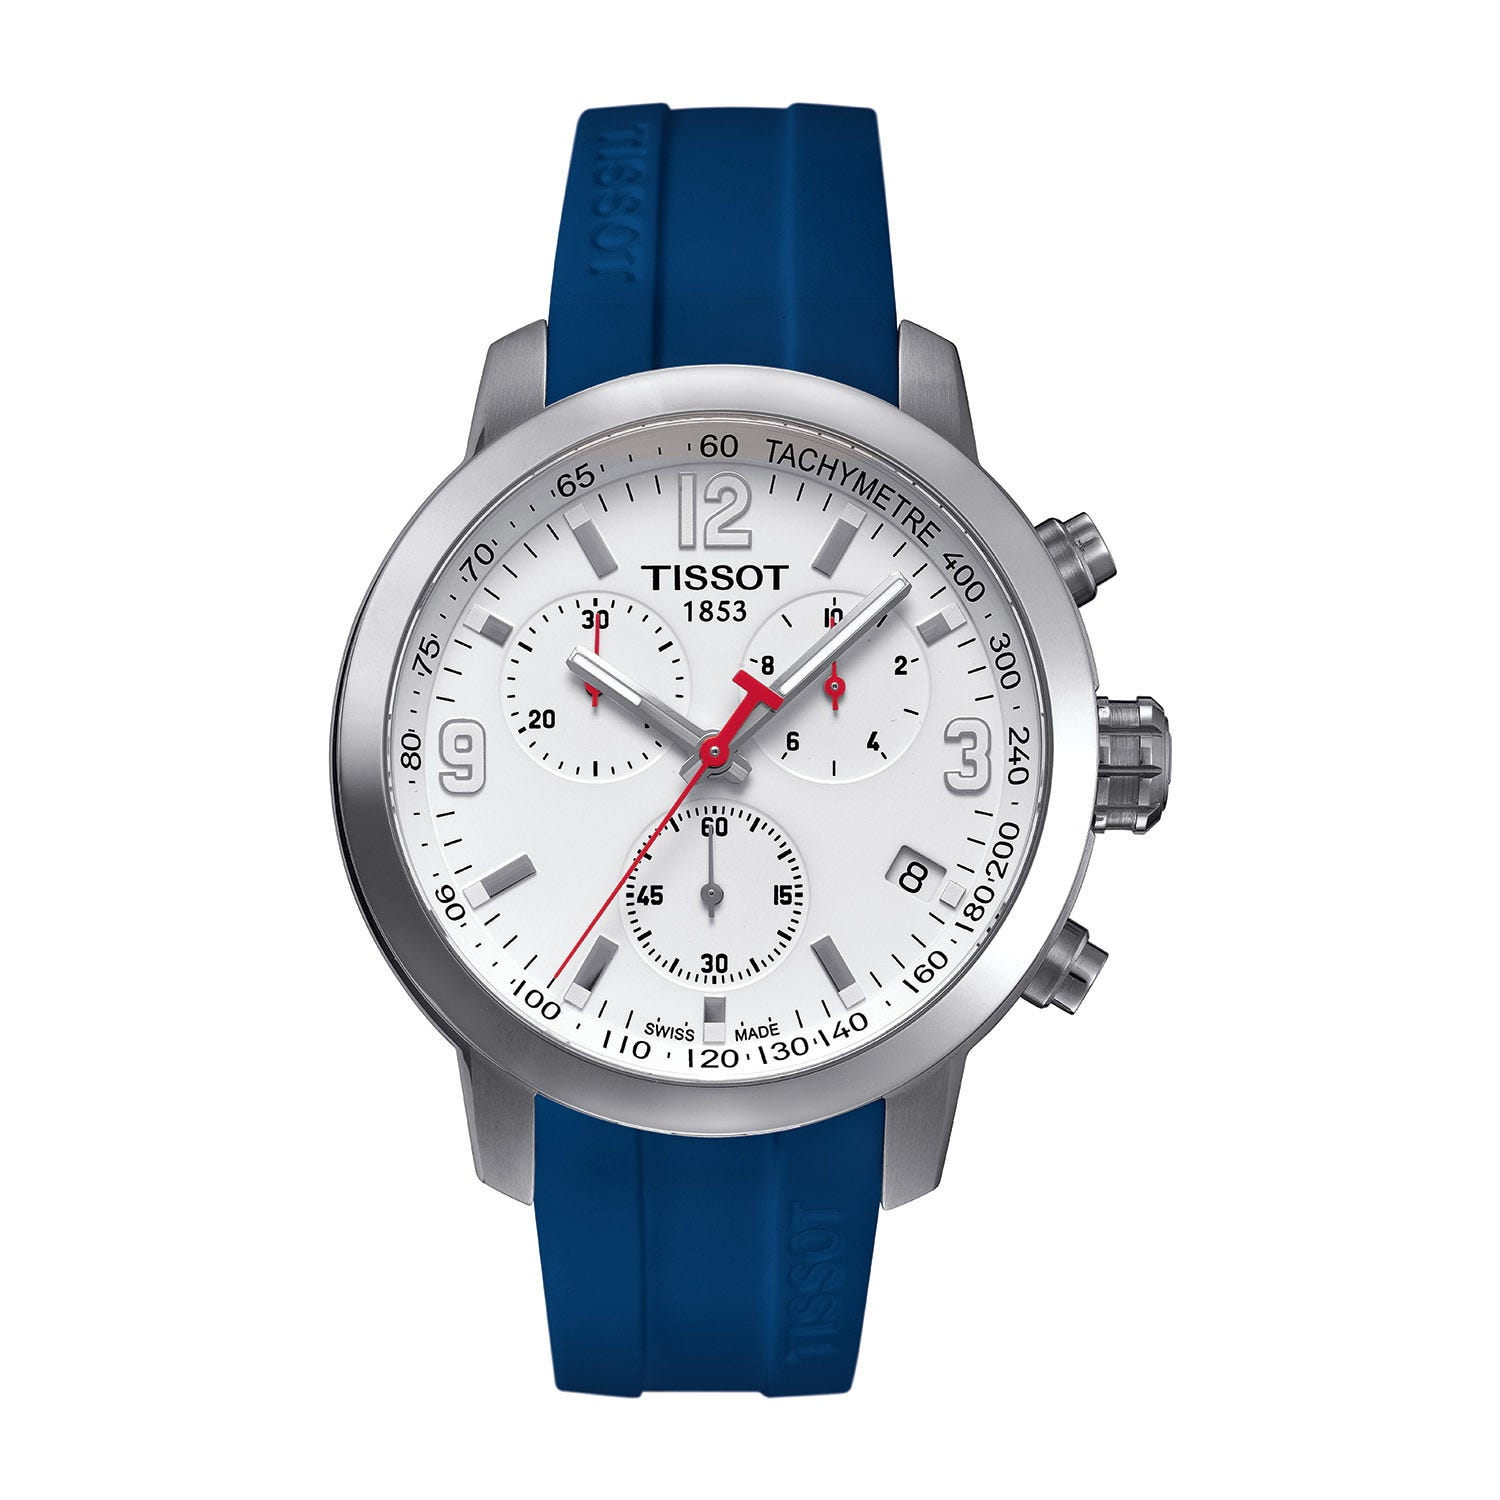 Tissot 6 Nations 2018 Special Edition Mens Watch